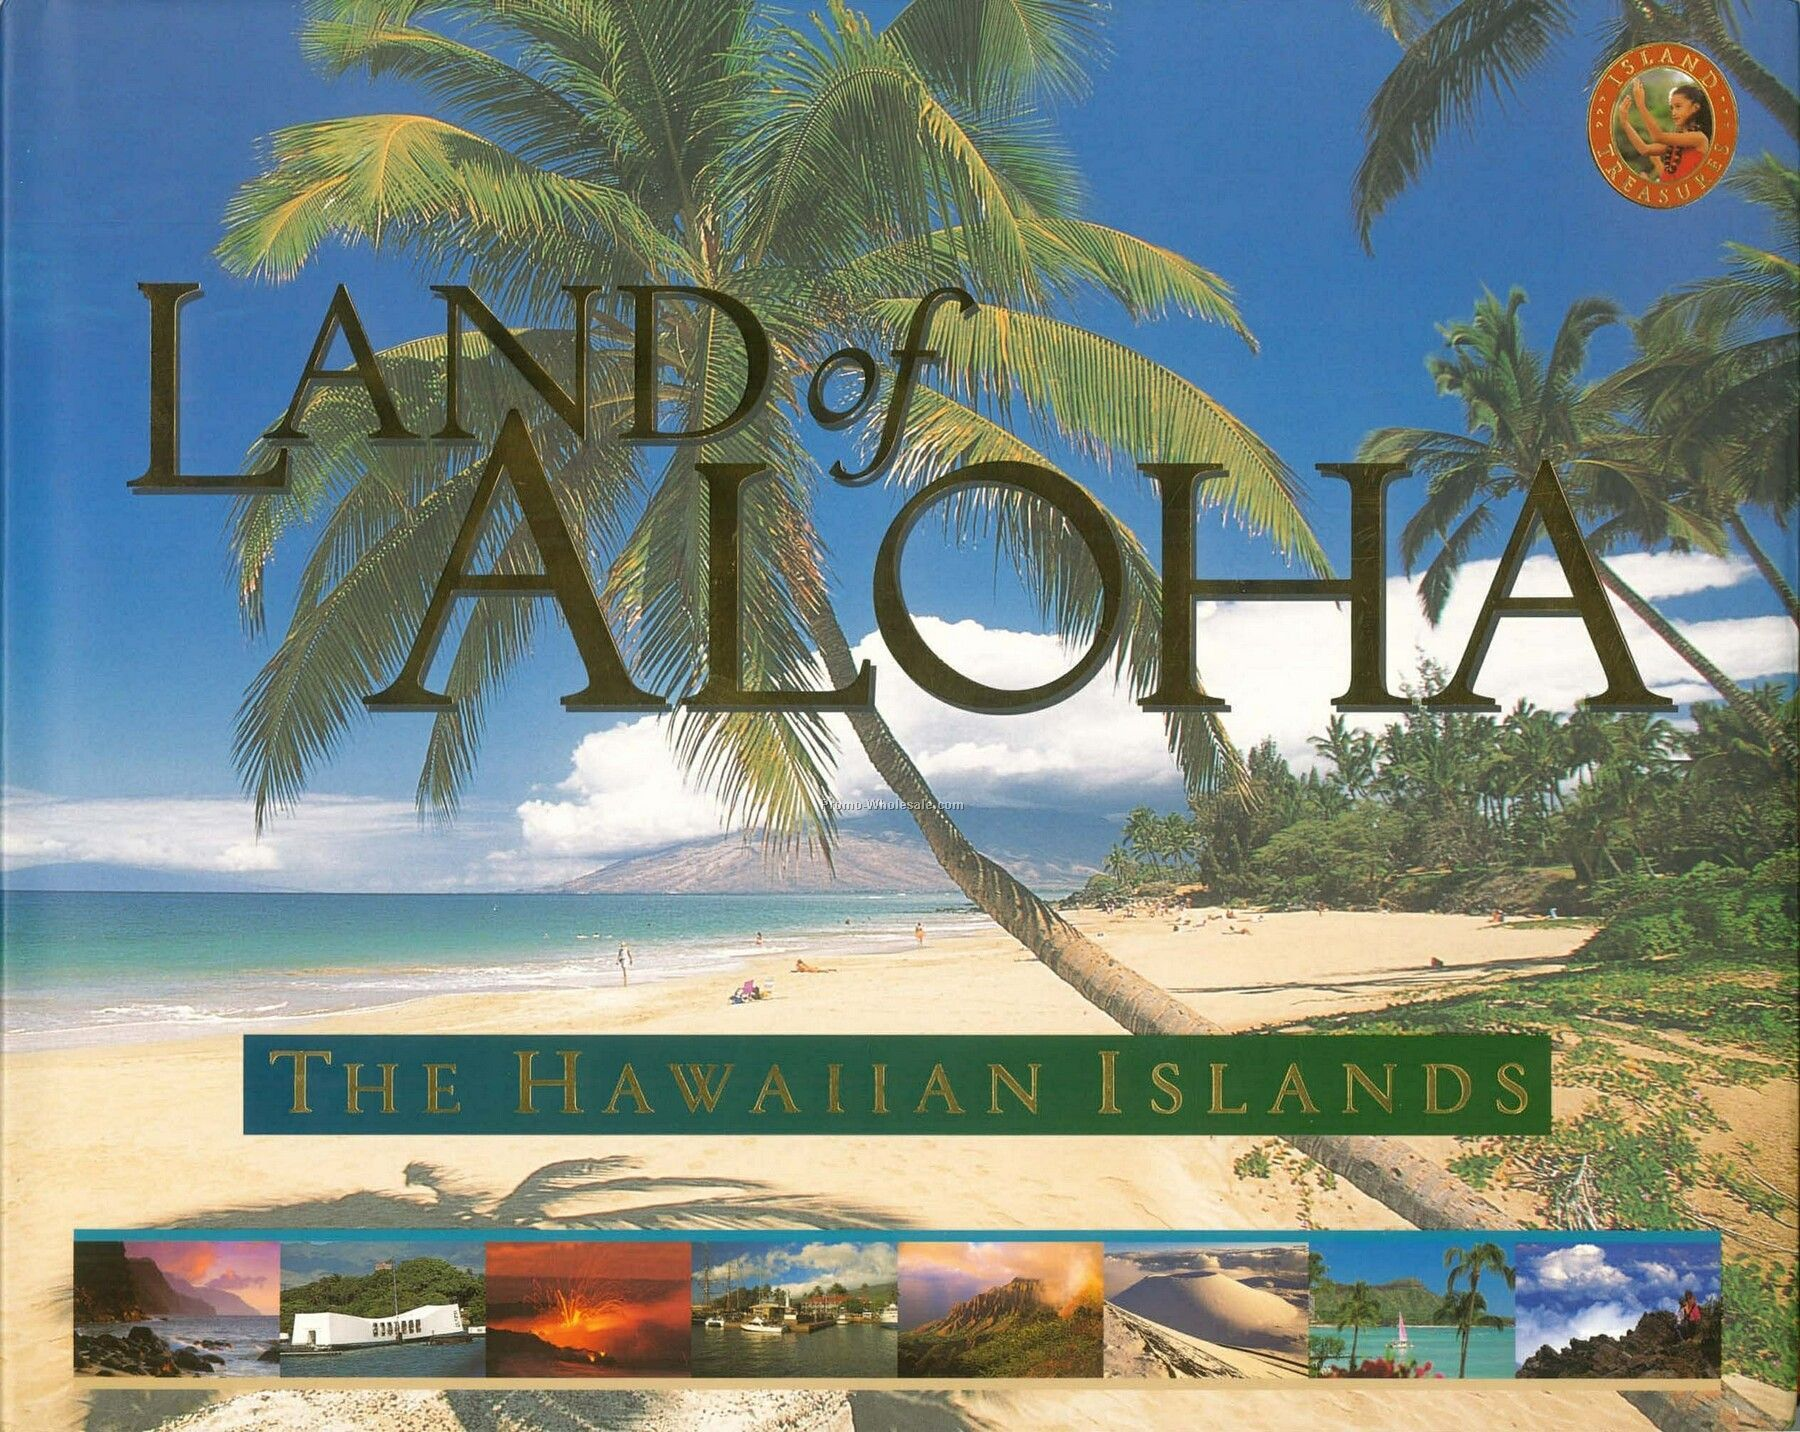 Hawaiian Island Series - Land Of Aloha